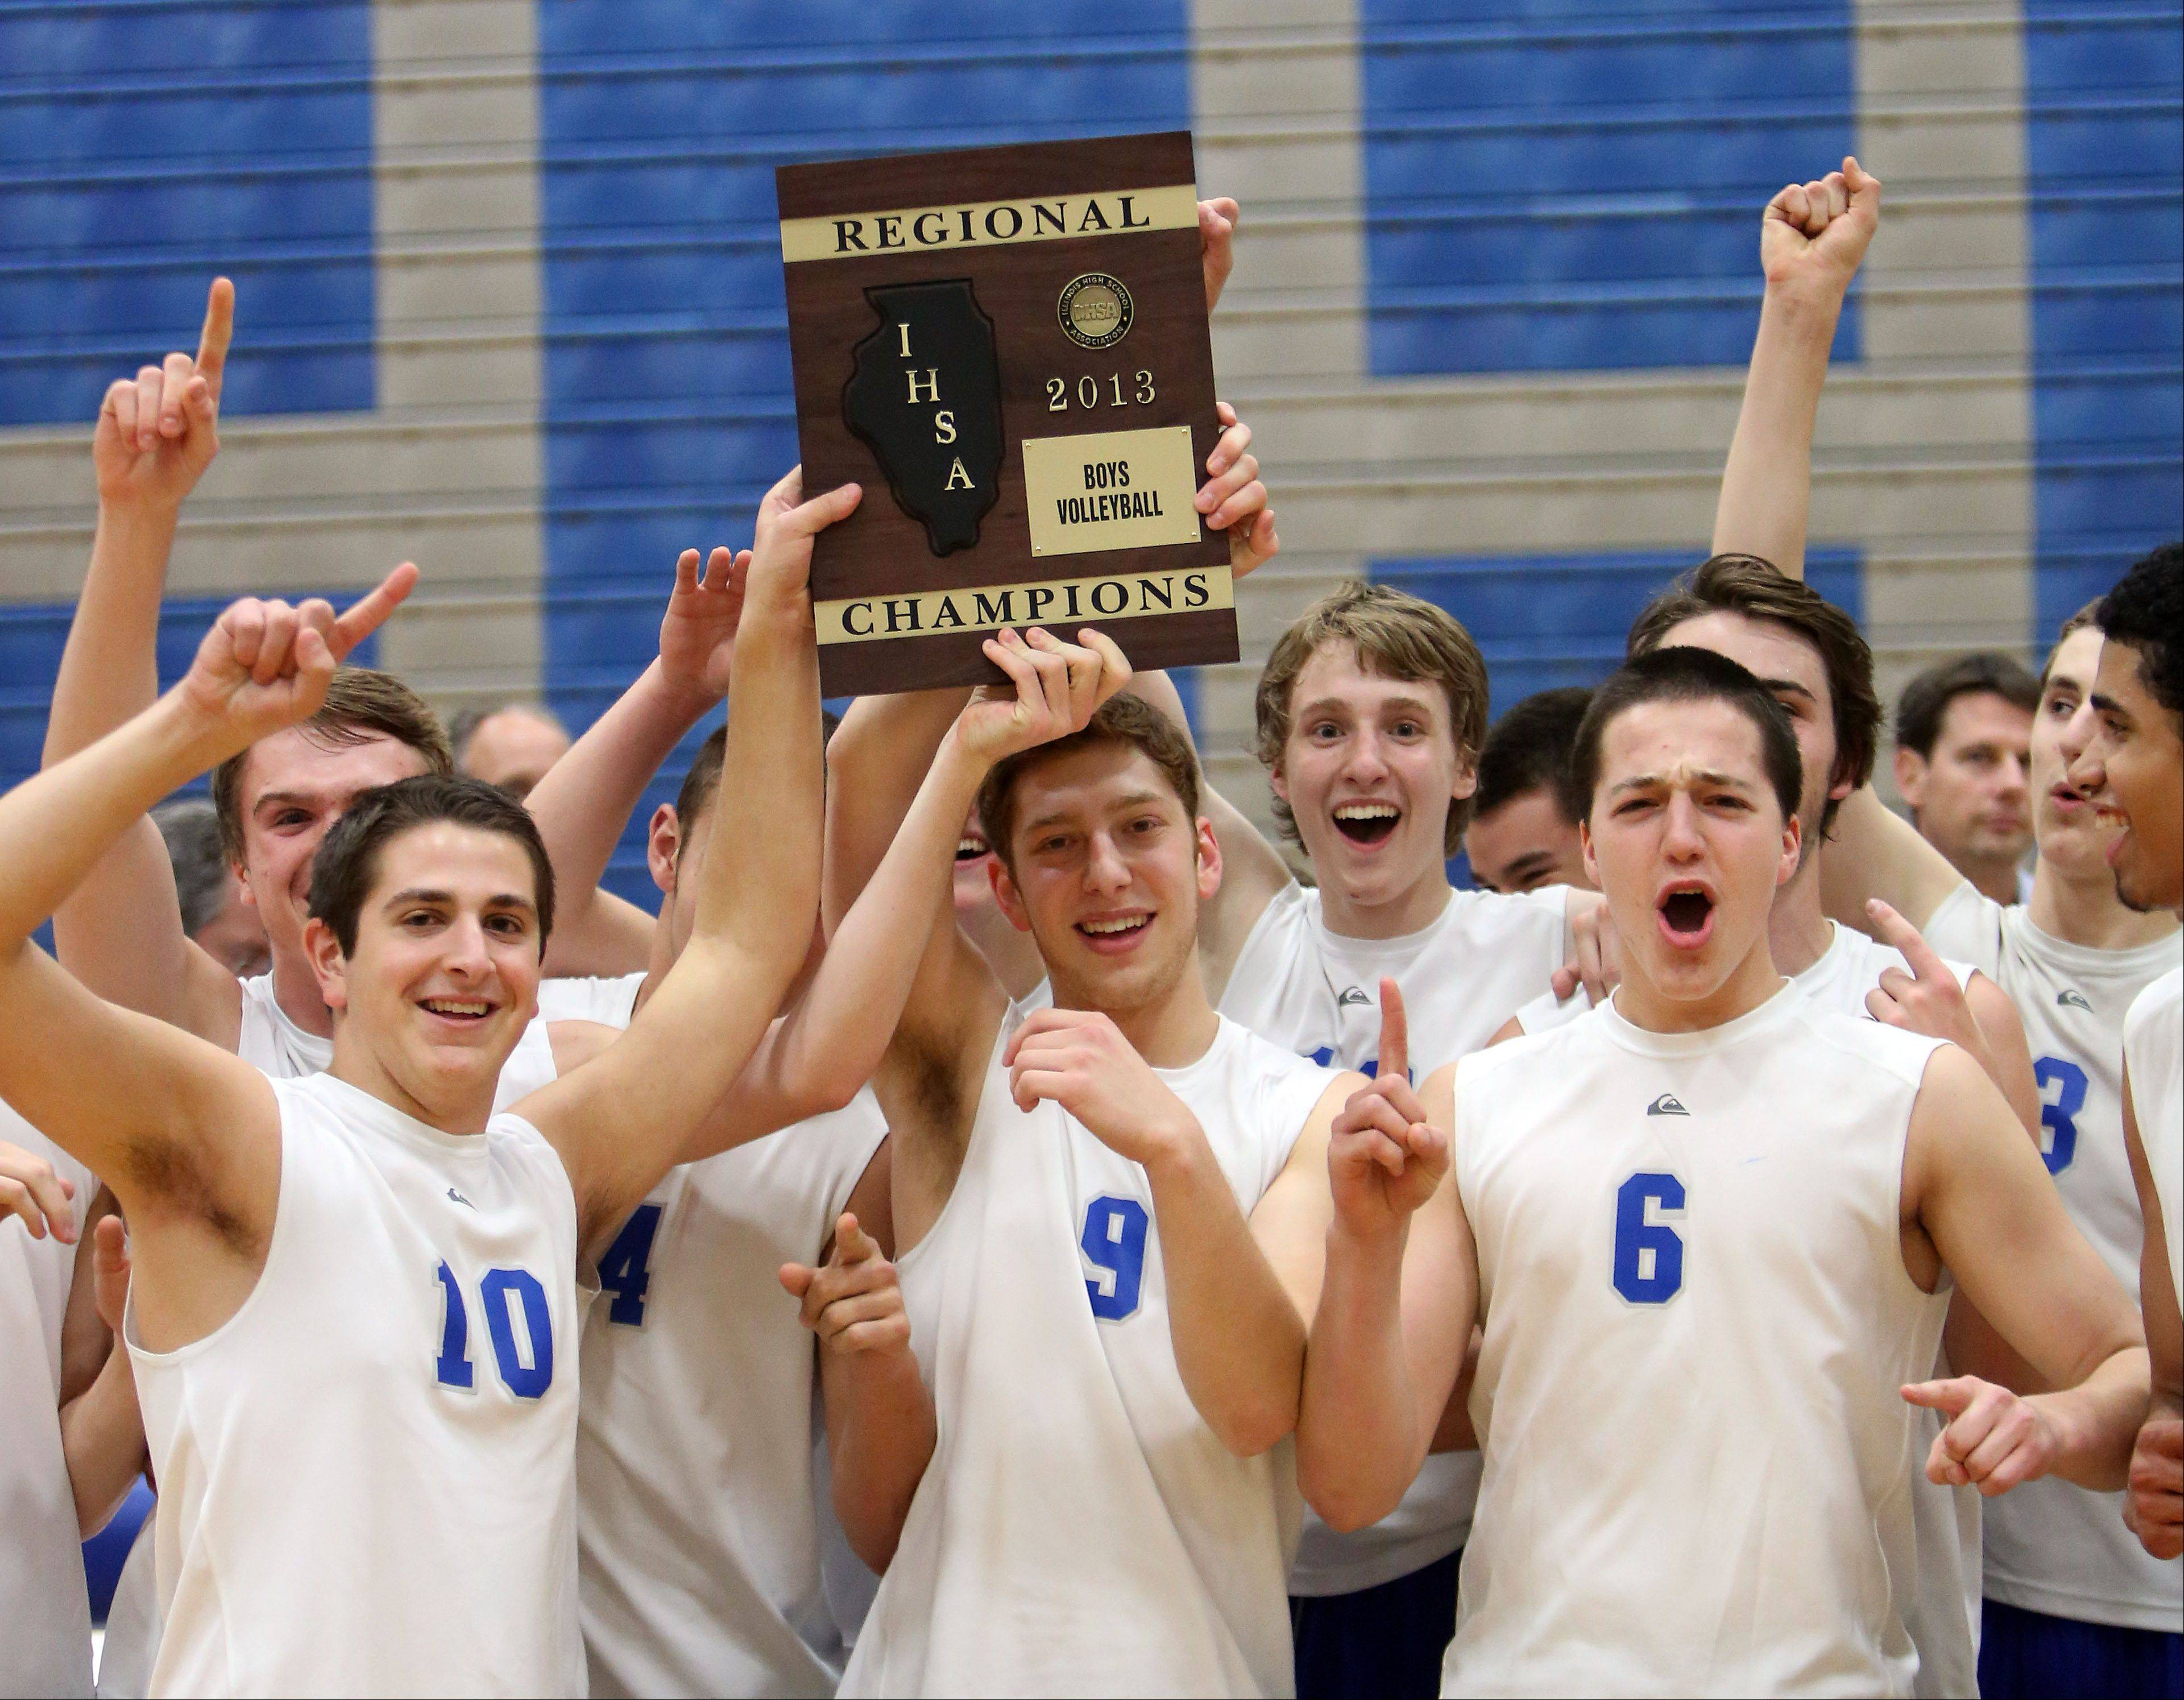 Vernon Hills boys volleyball players hoist the regional trophy after their win over Palatine on Wednesday night at Vernon Hills.